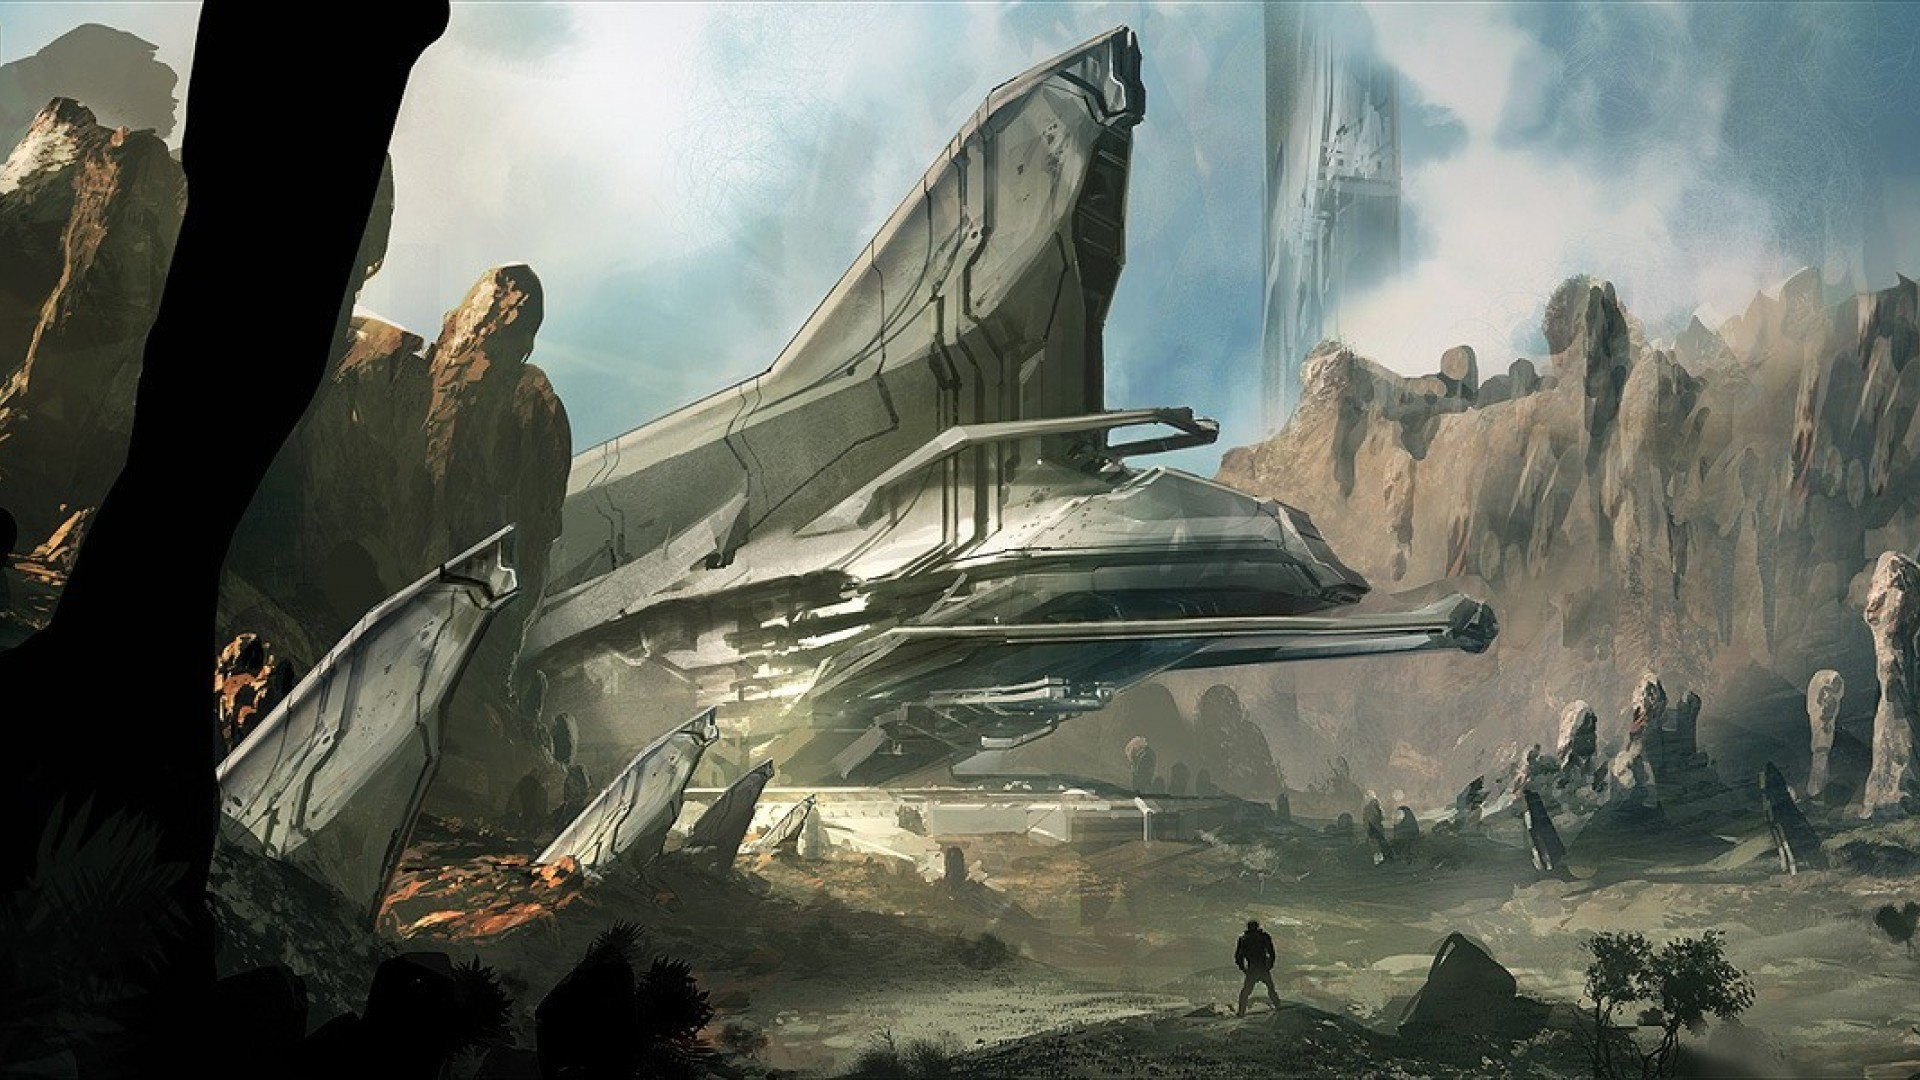 Halo Concept Art Wallpapers HD (73+ images)